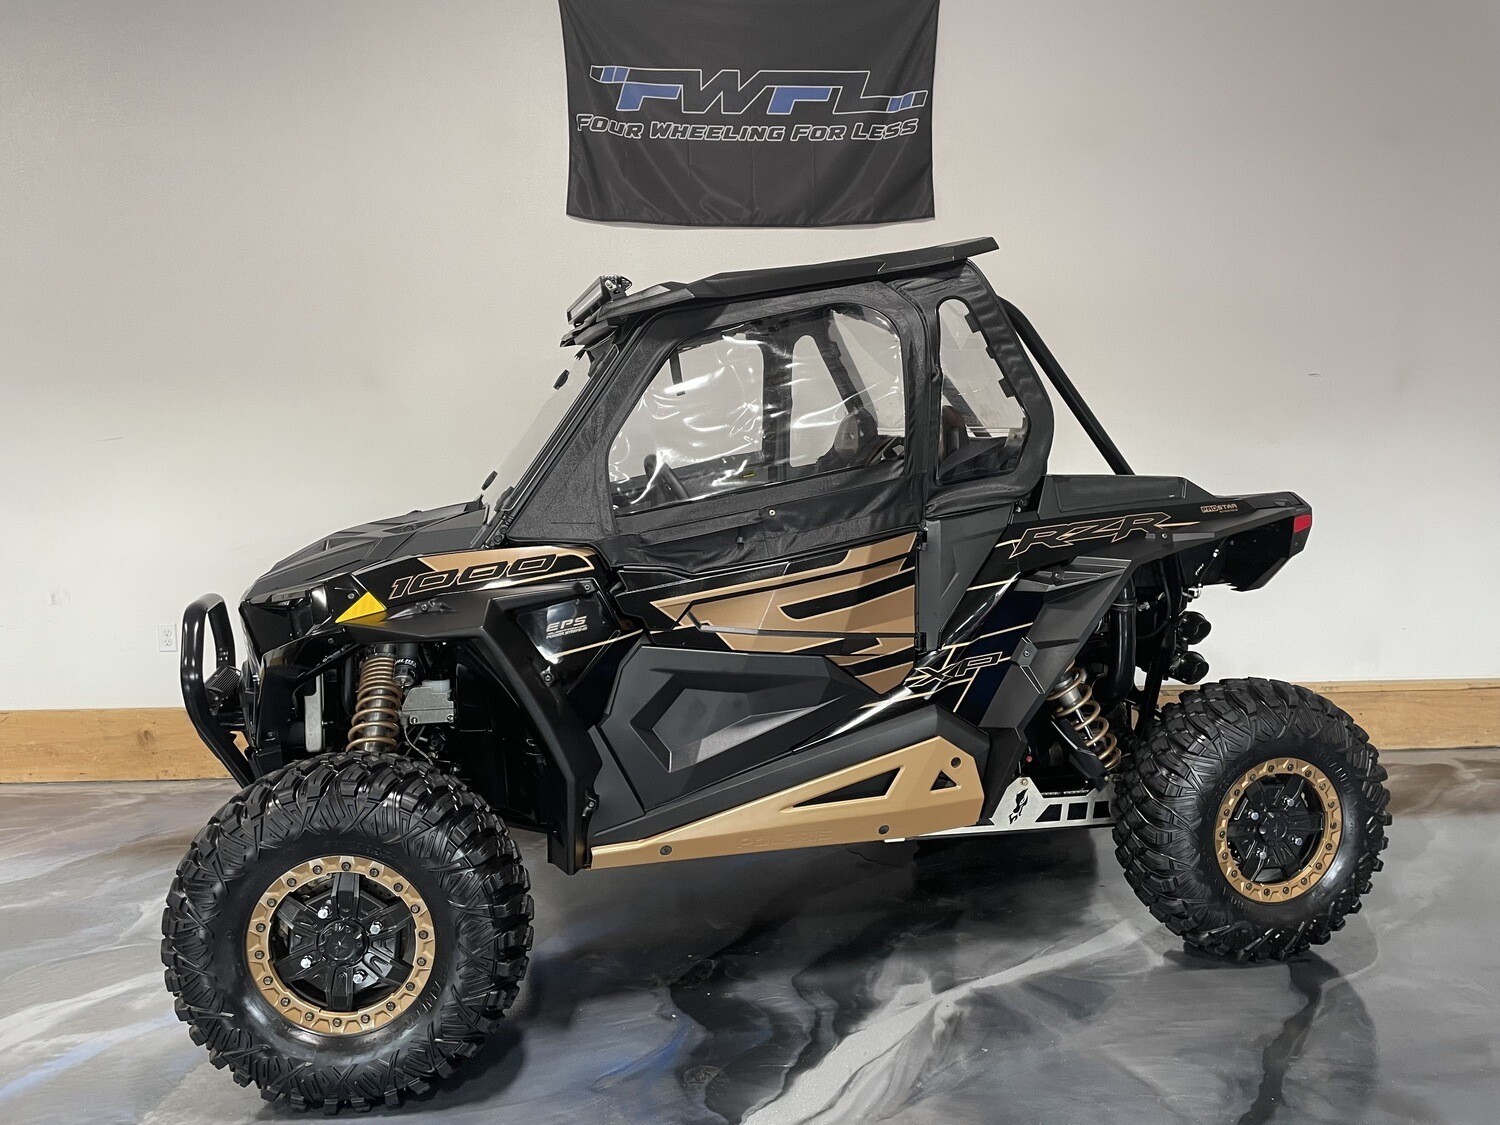 2019 Polaris RZR XP 1000 EPS Trails and Rocks Edition - Great Condition!